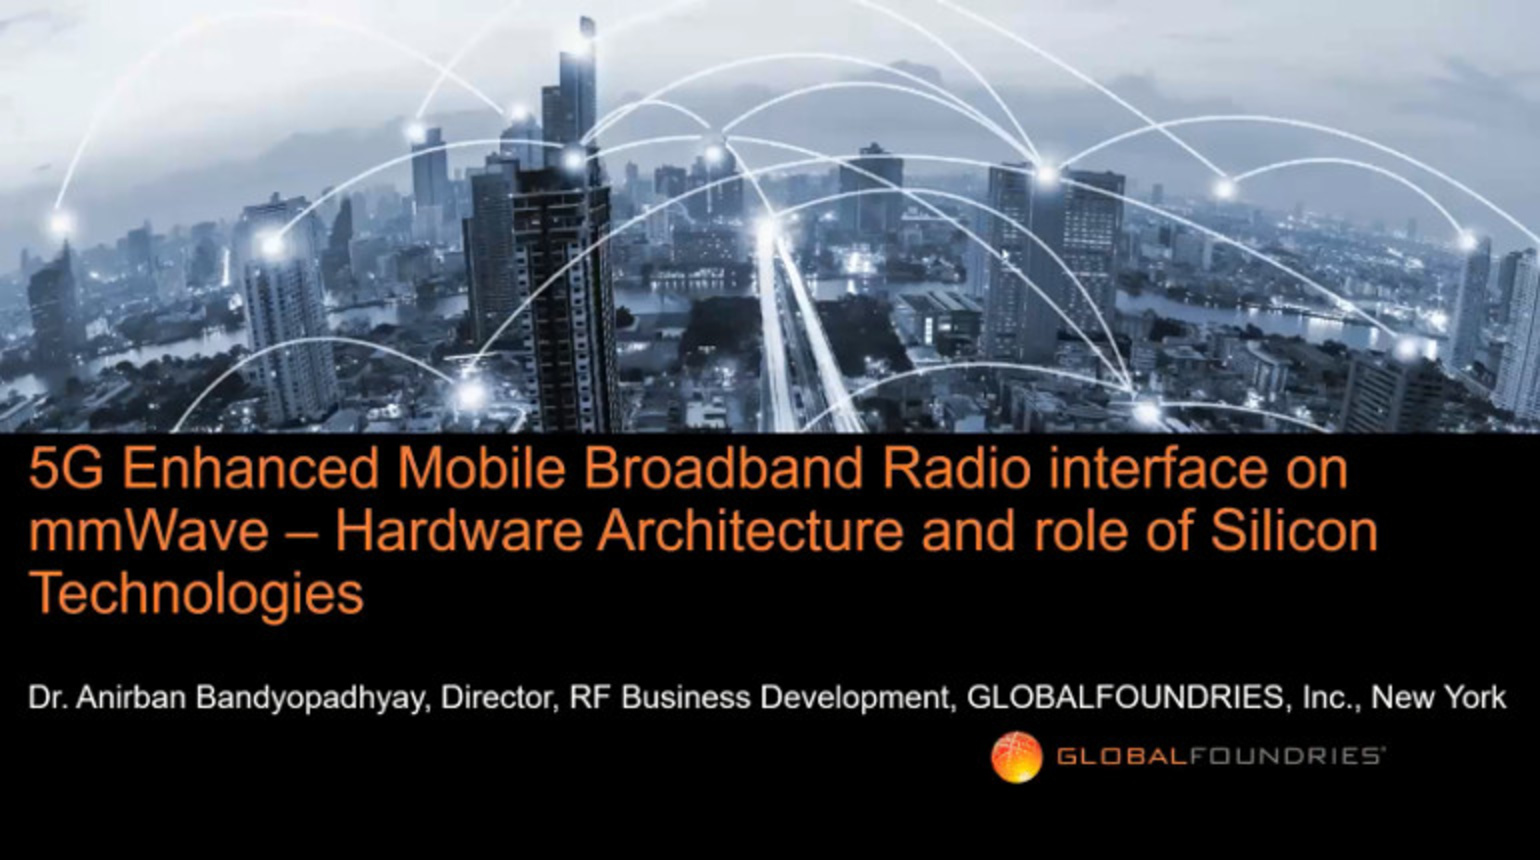 IEEE Future Networks: Silicon Technologies for mmWave 5G Enhanced Mobile Broadband Radio Interface